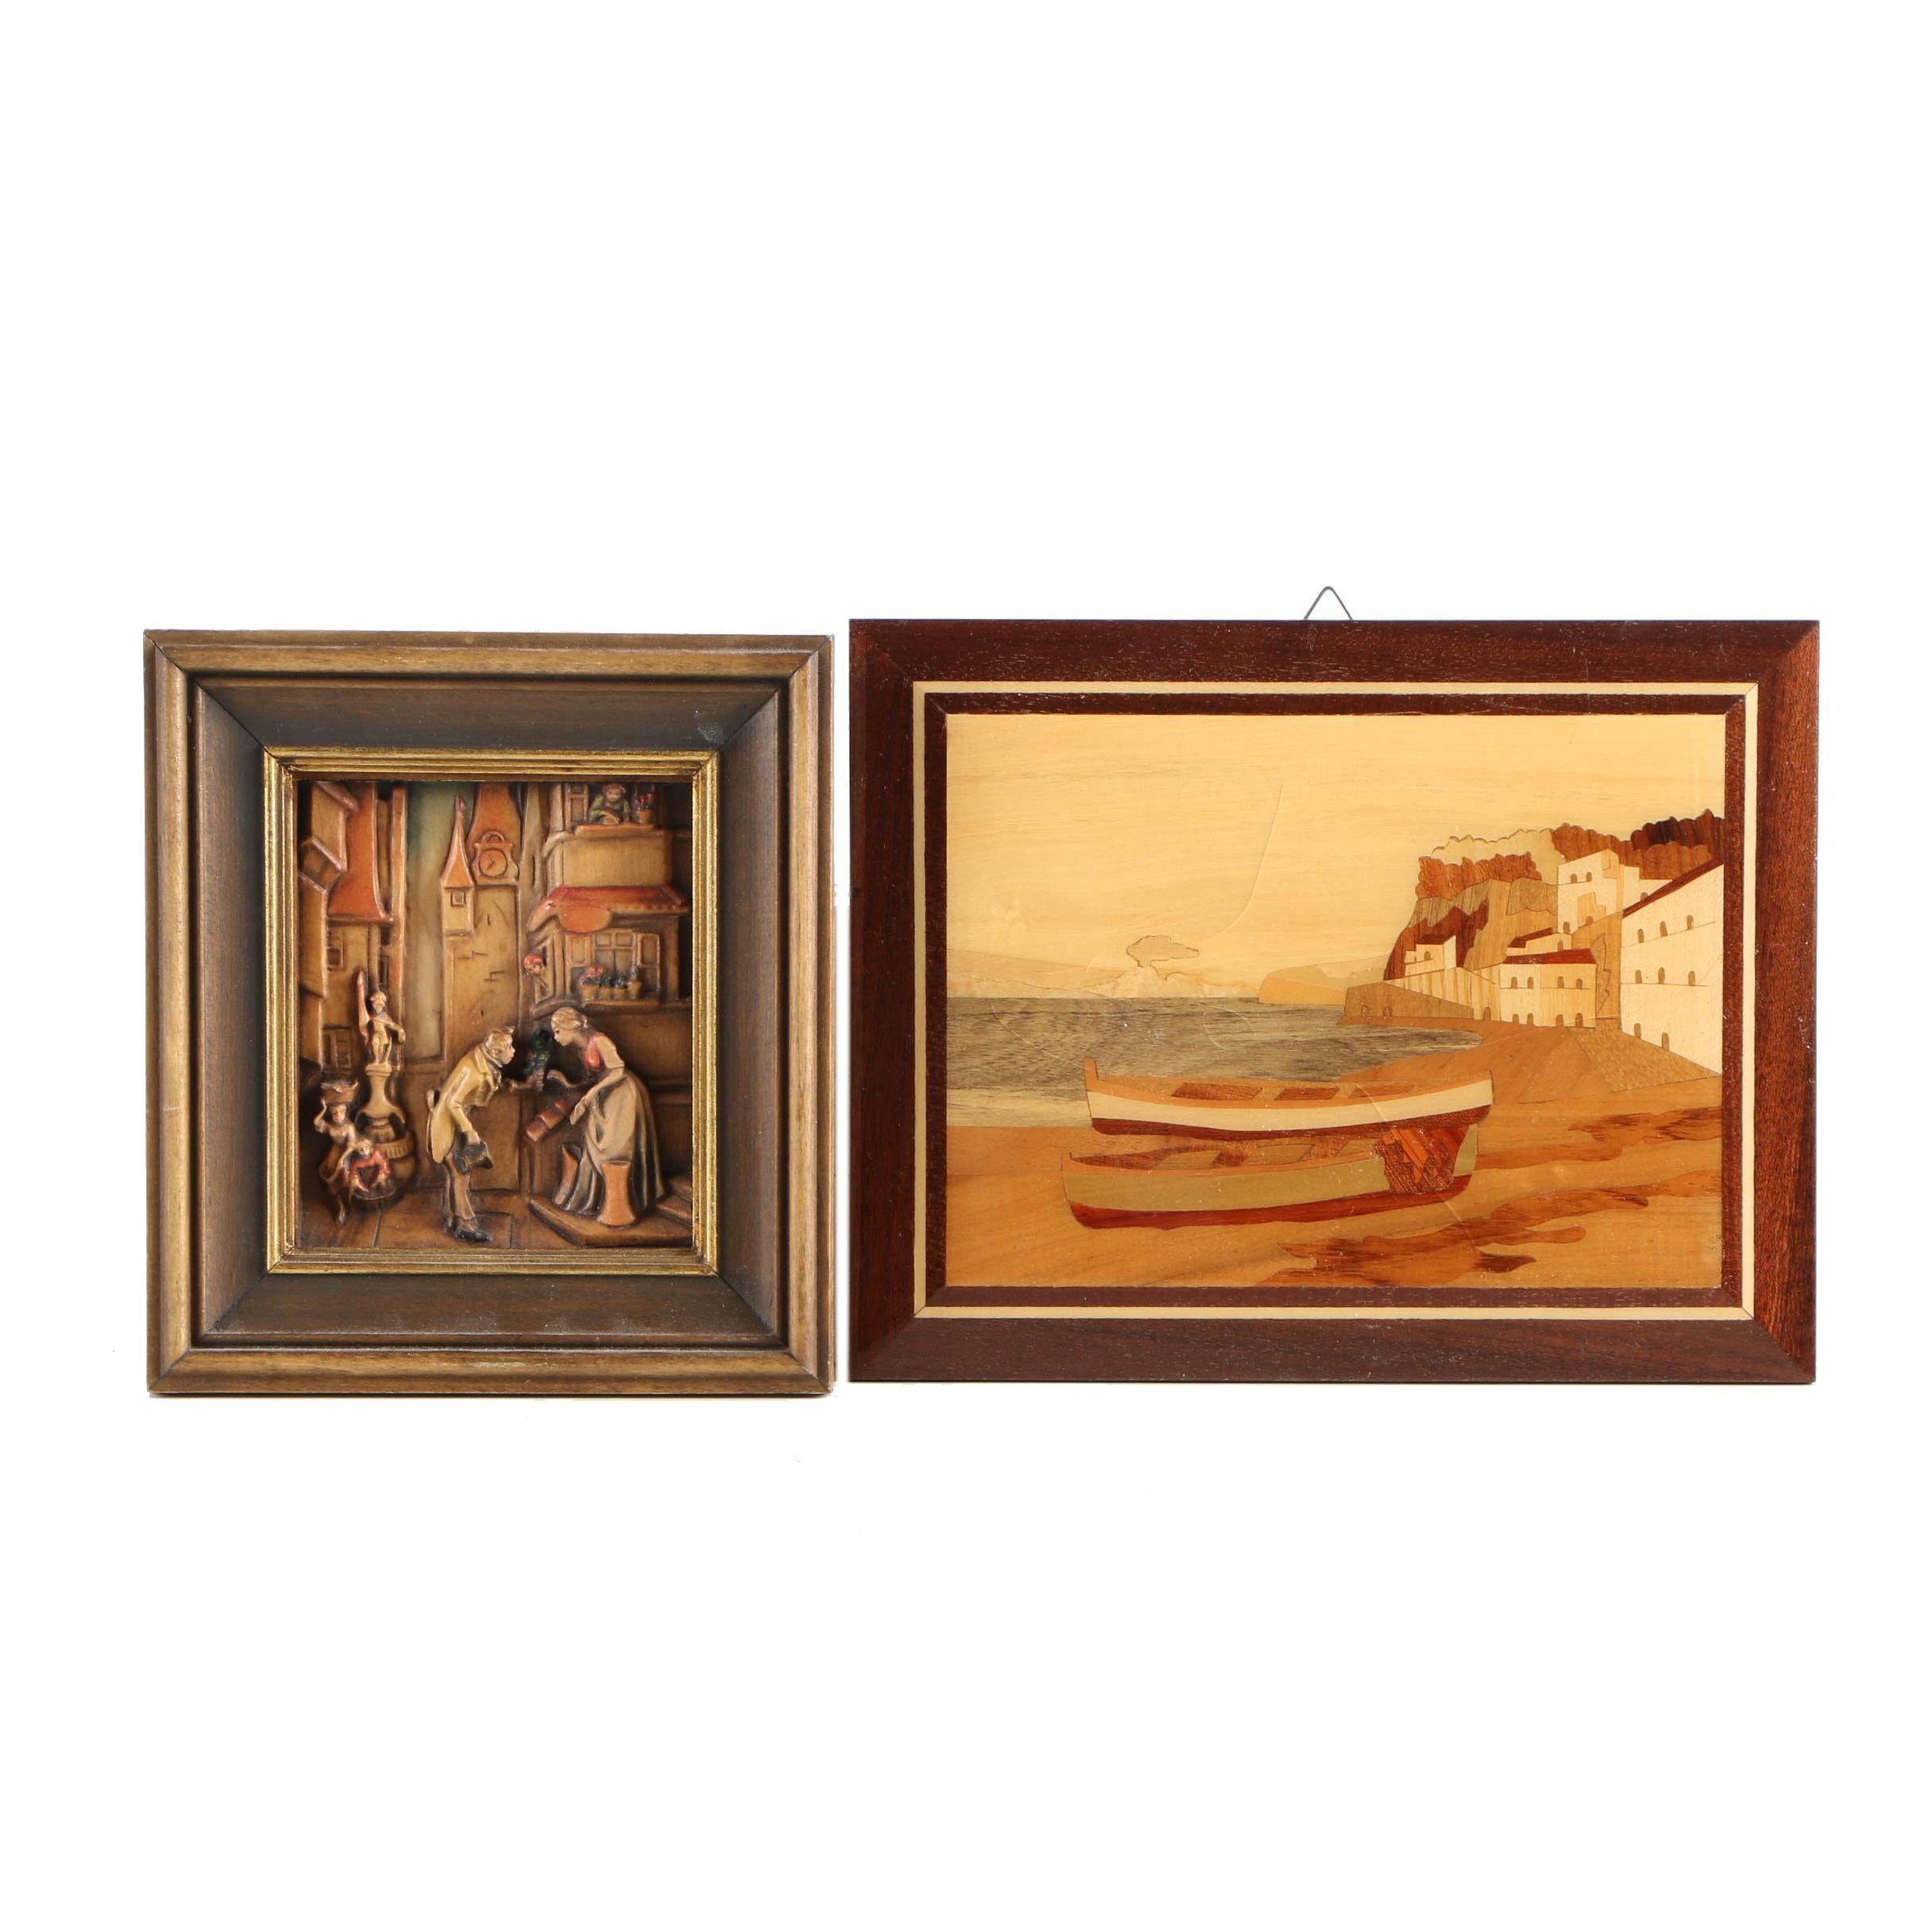 Marquetry Panel and Painted Carved Wood Relief After Carl Spitzweg